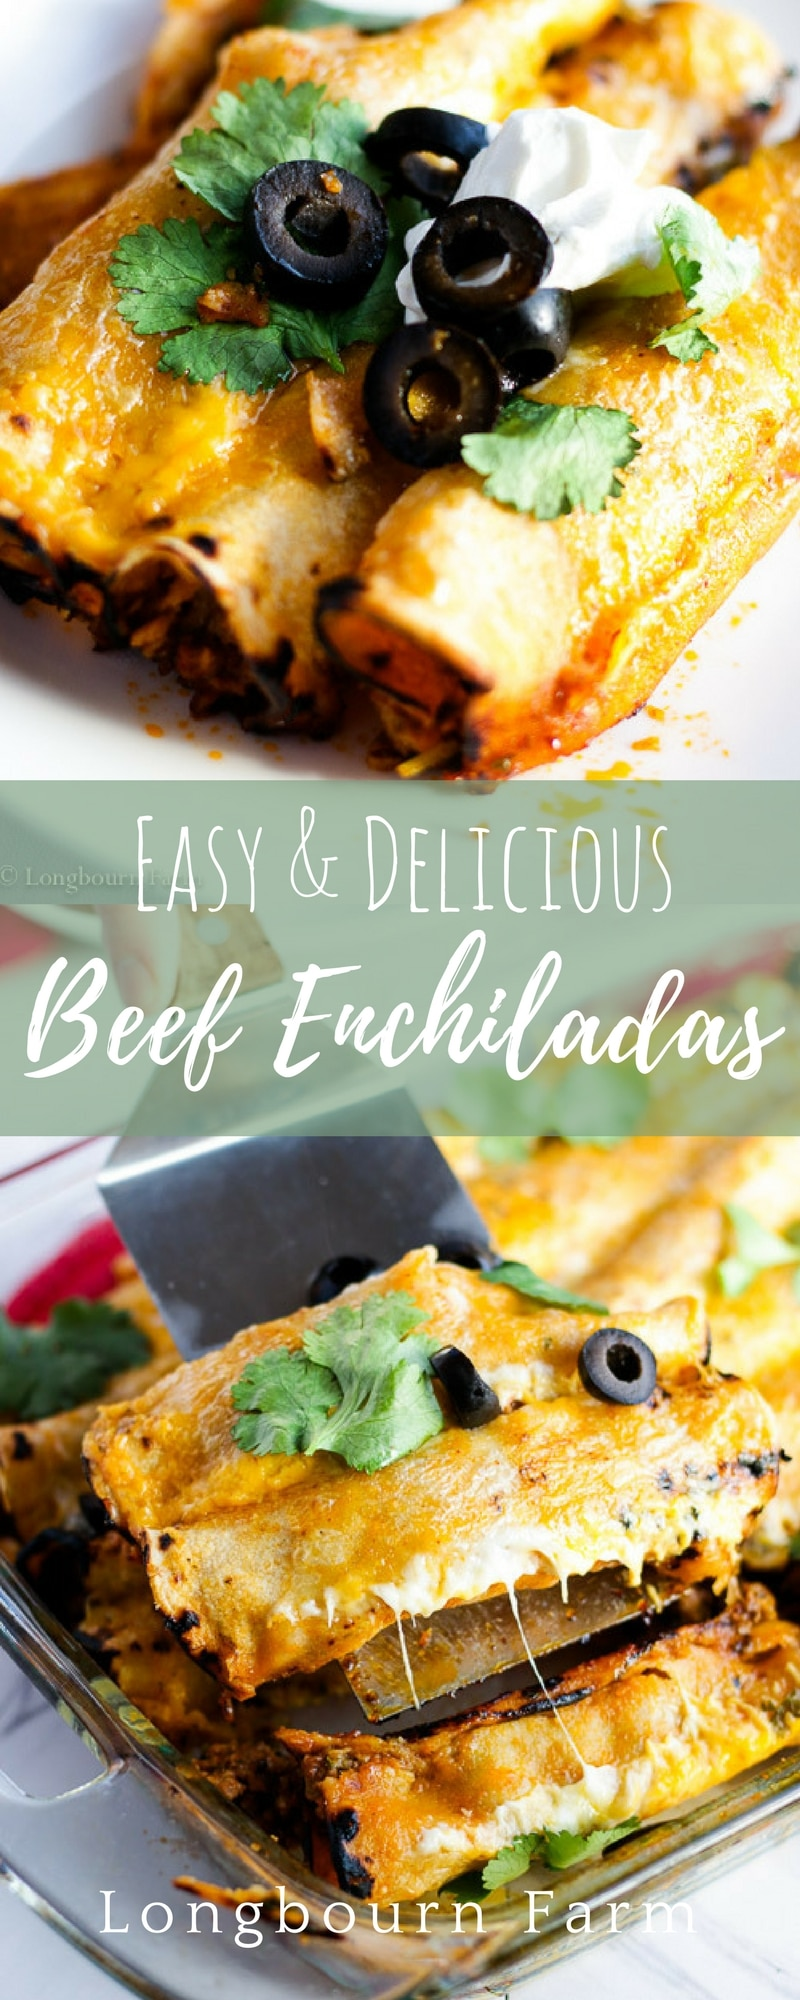 Easy beef enchilada recipe! This recipe is so good with a completely homemade enchilada sauce that doesn't take a blender to make. SO EASY! Plus 3 ideas for making beef enchilada freezer meals!